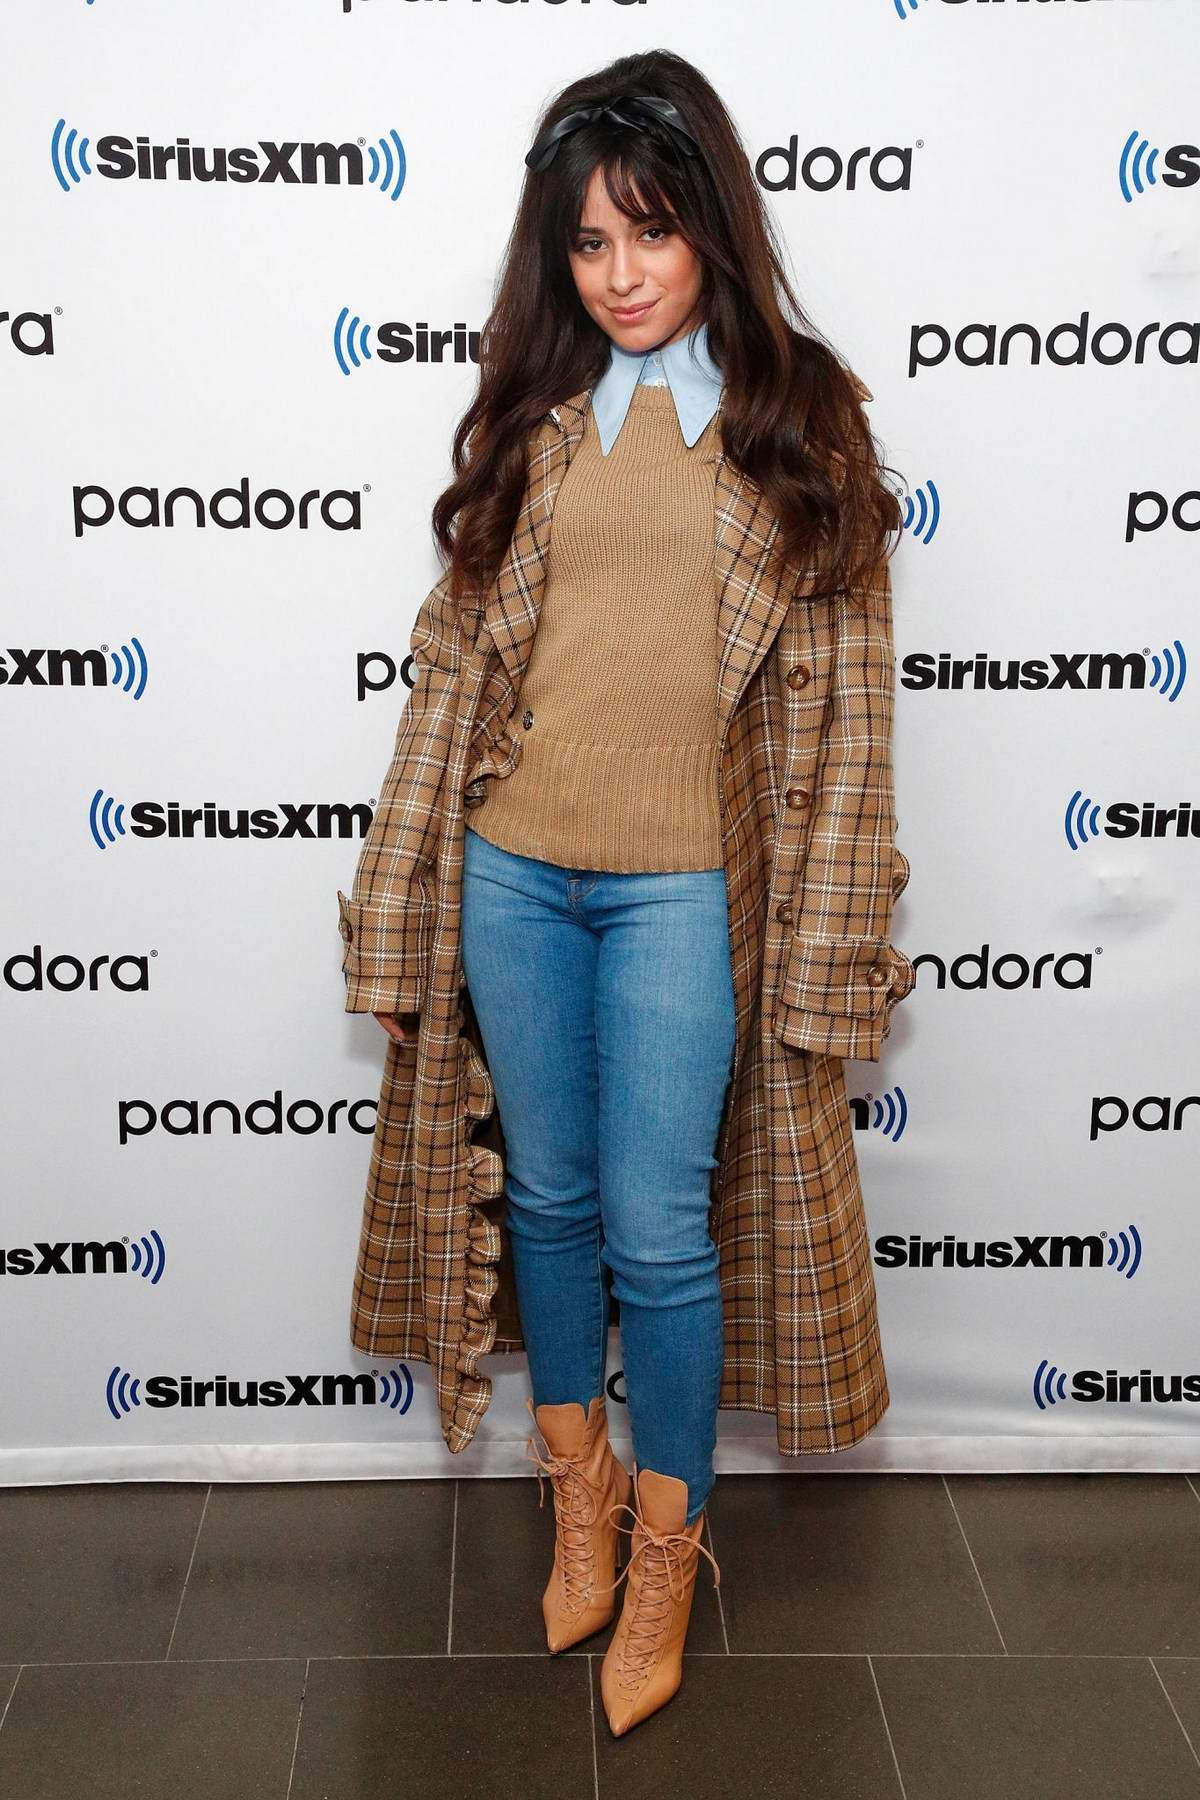 Camila Cabello visits SiriusXM Studios in New York City